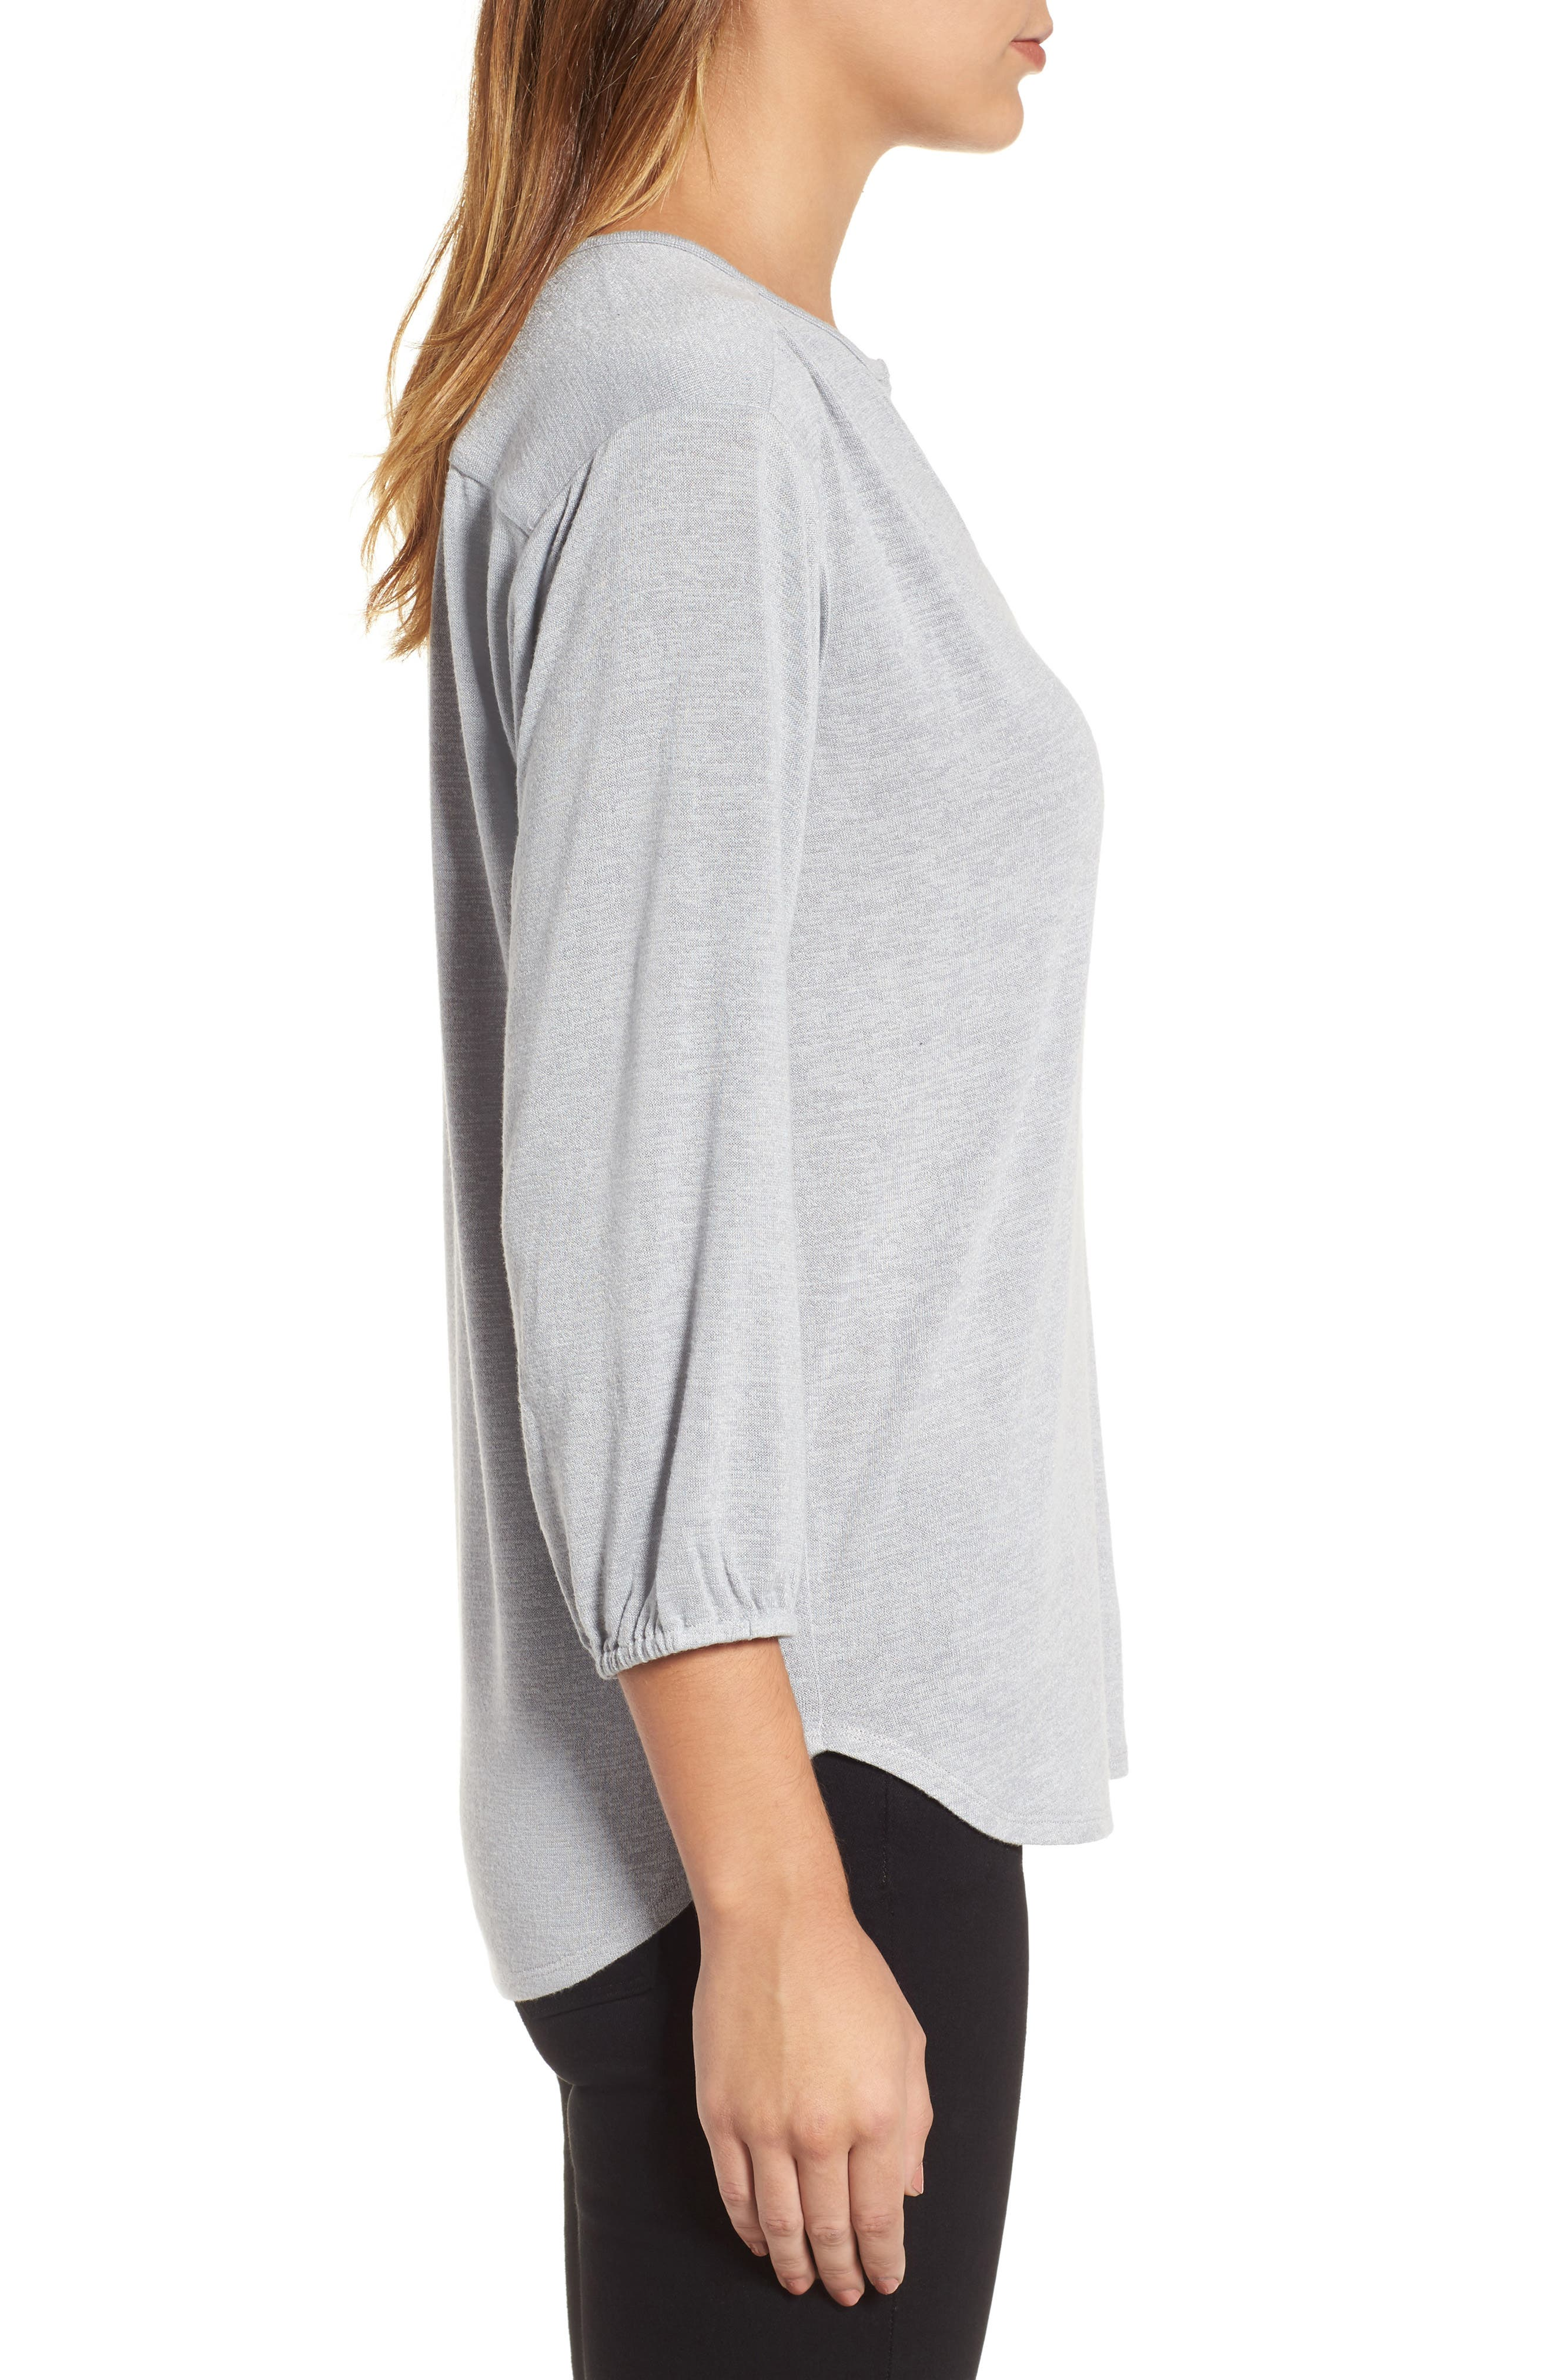 Snowfall Stretch Knit Top,                             Alternate thumbnail 3, color,                             Icy Grey